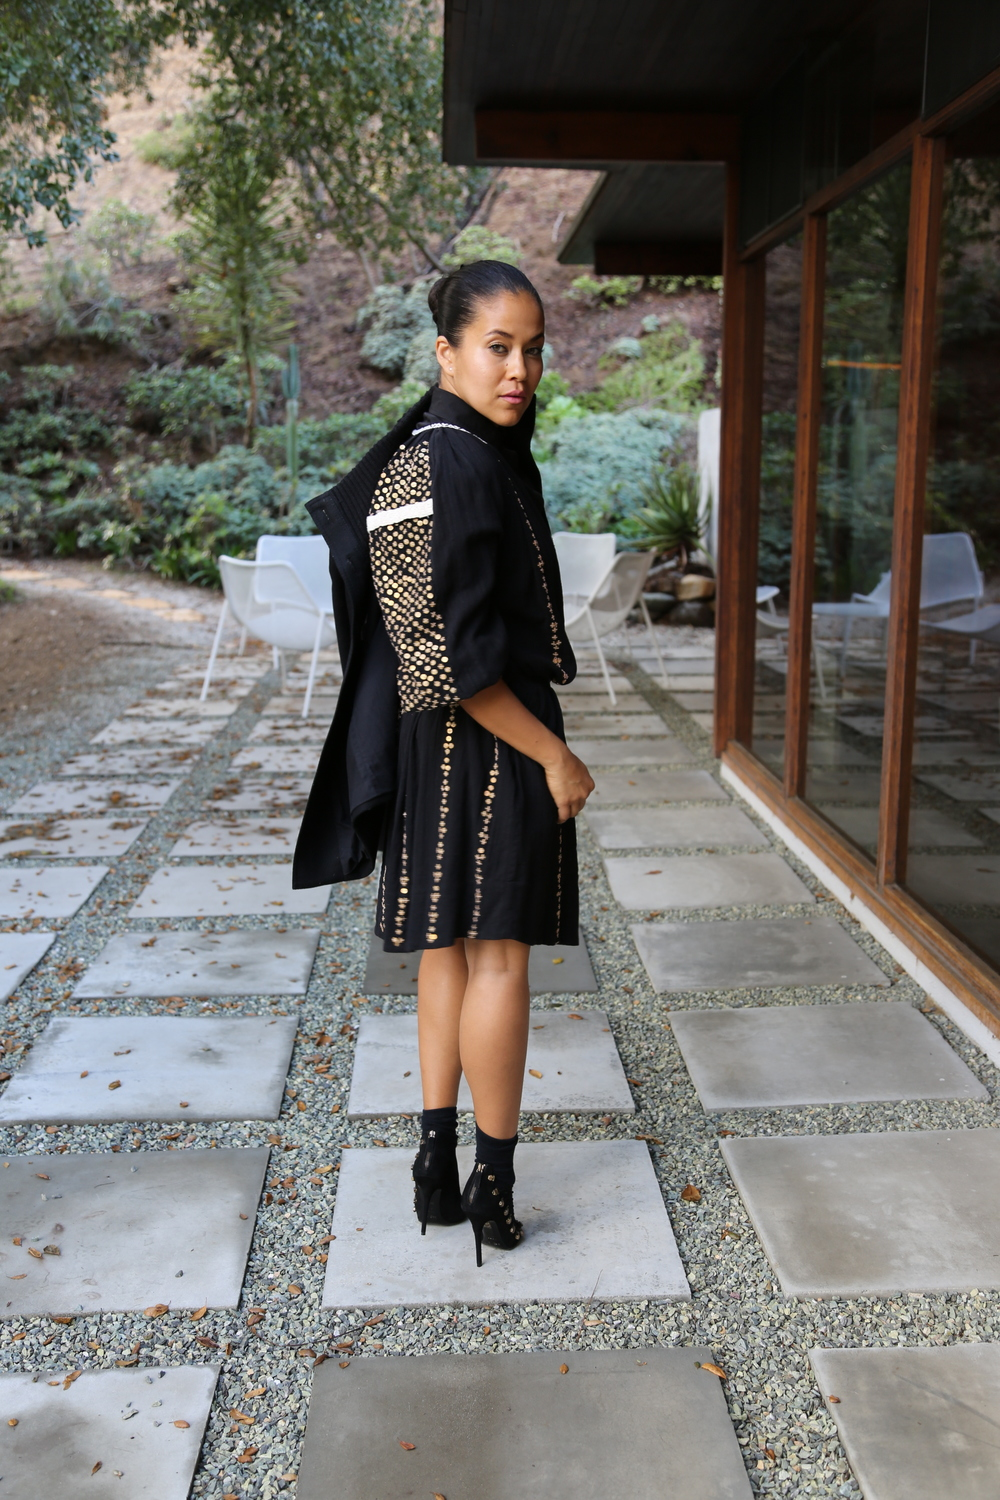 isabel-marant-black-sequin-dress-balmain-cage-heels-alexander-wang-button-up-margiela-jacket-los-angeles.jpg